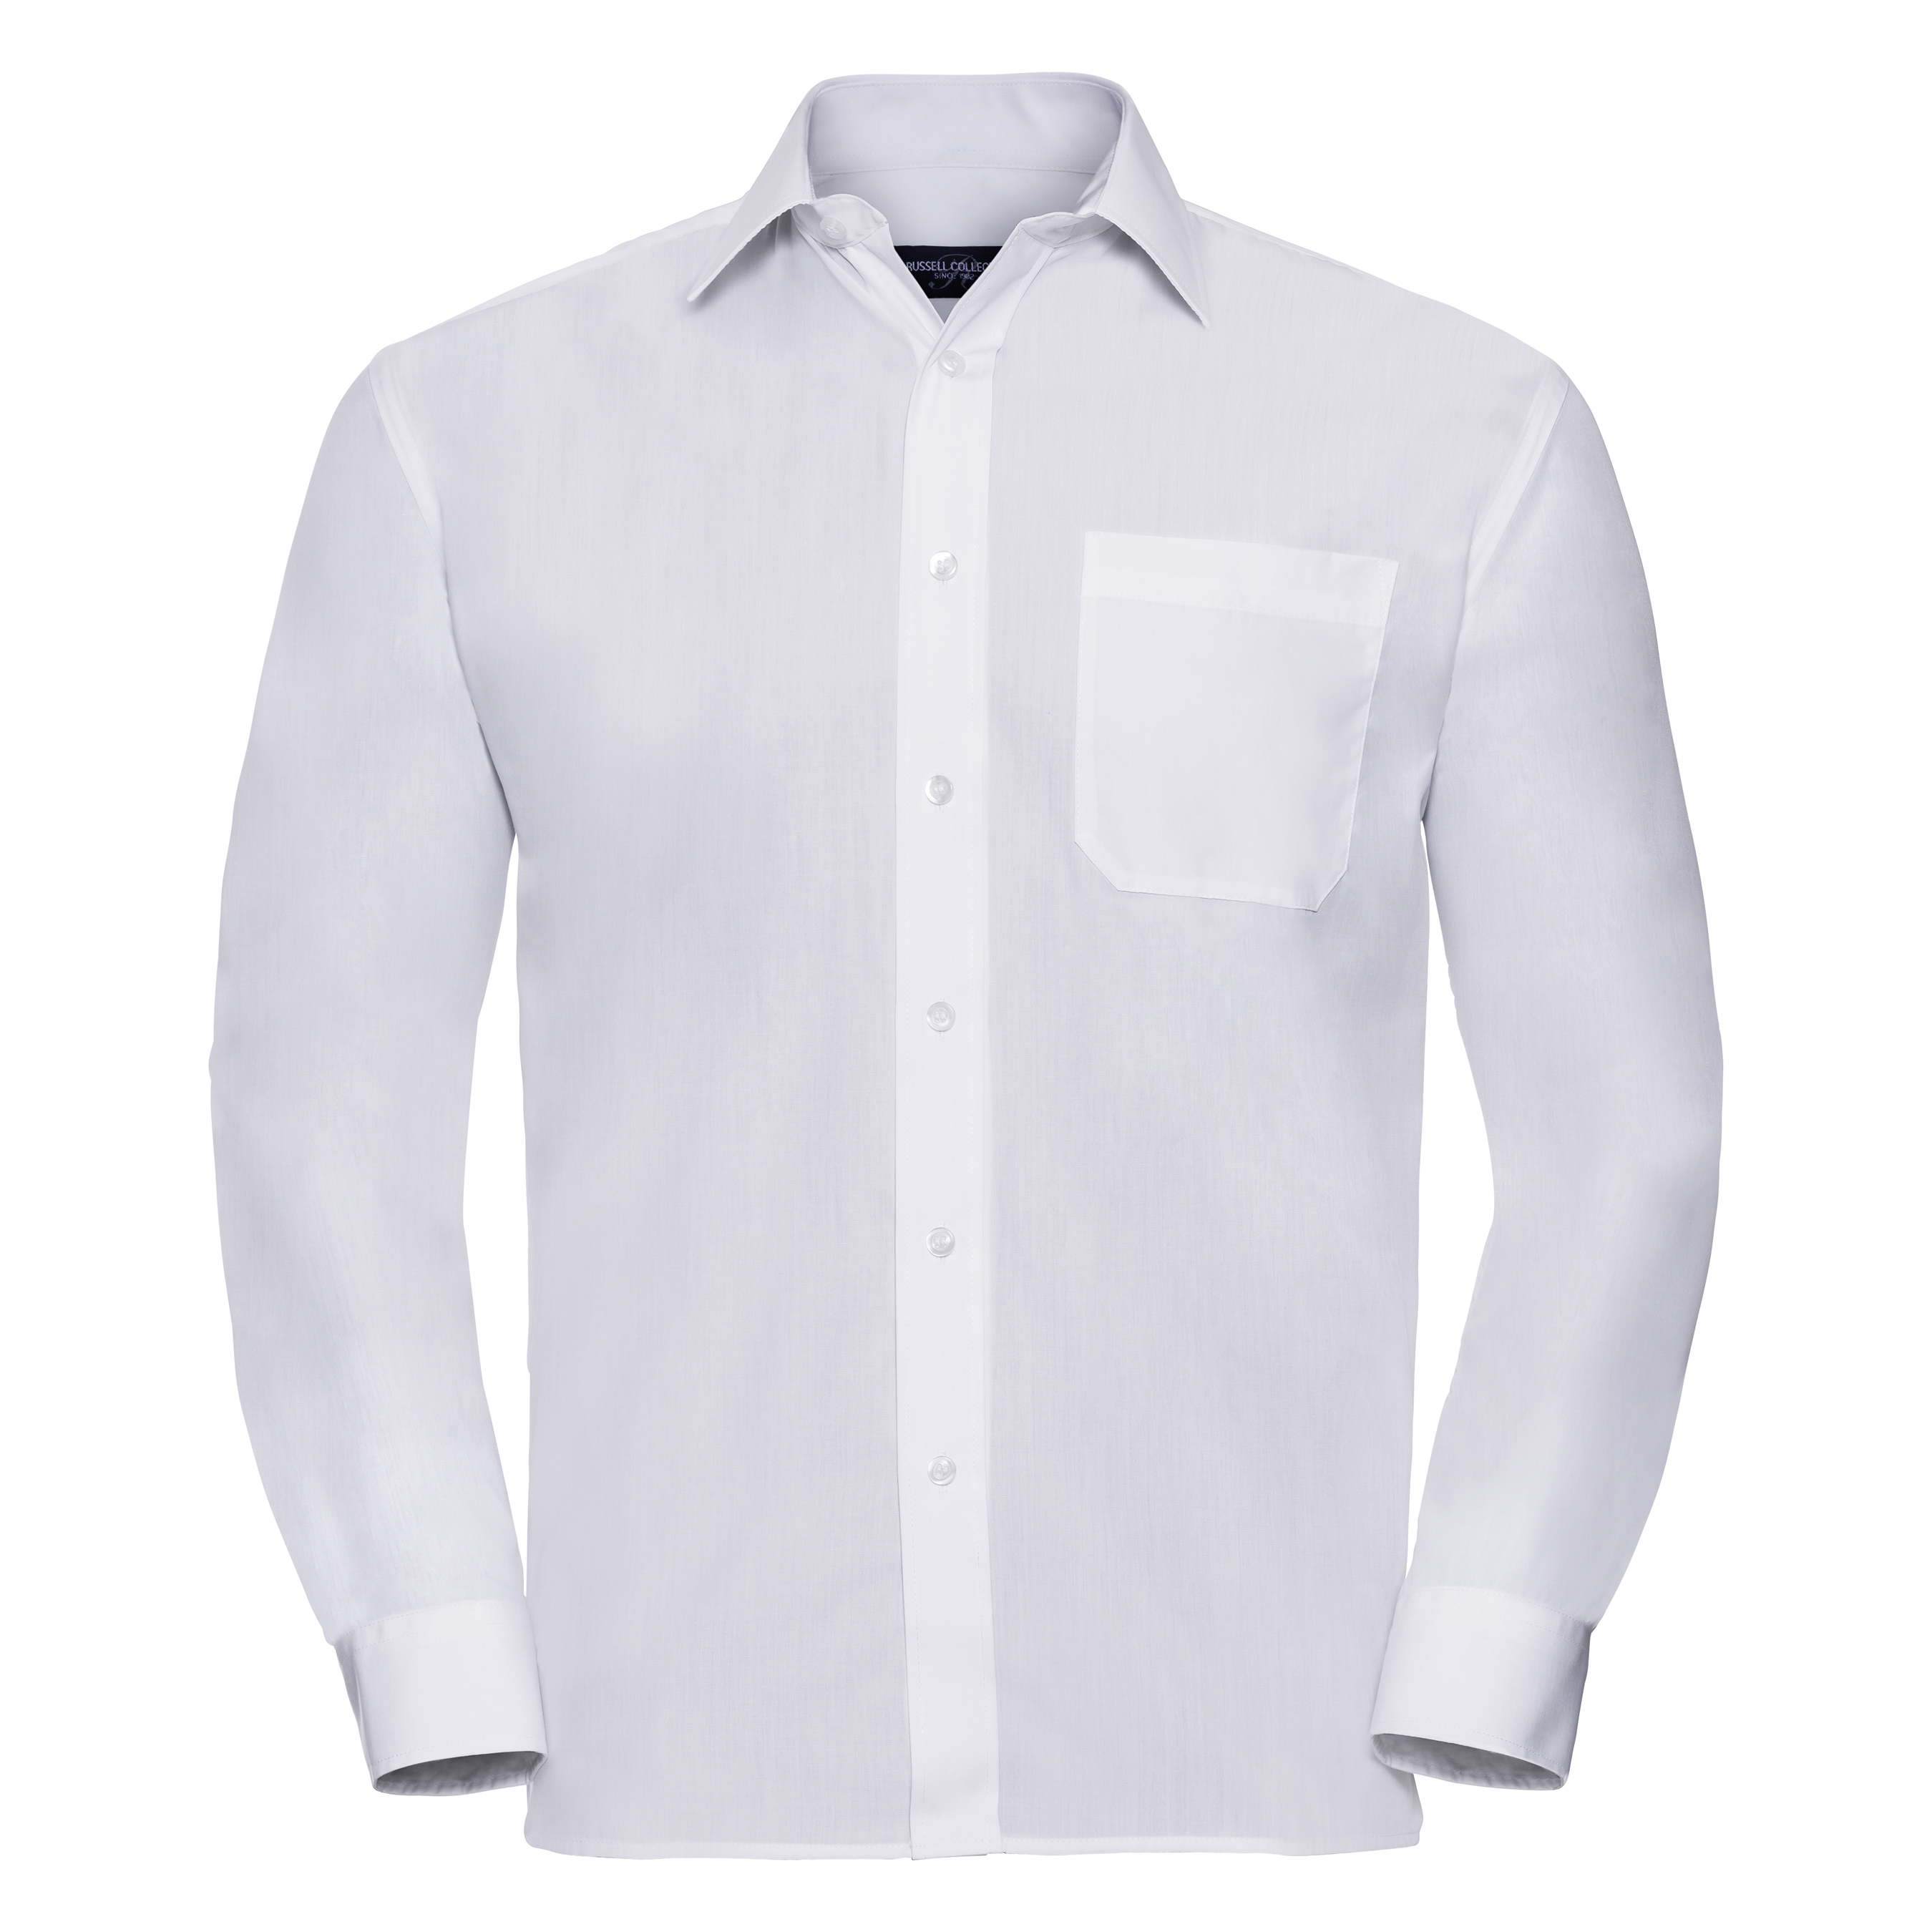 Russell Collection Mens Long Sleeve Shirt (18) (White)